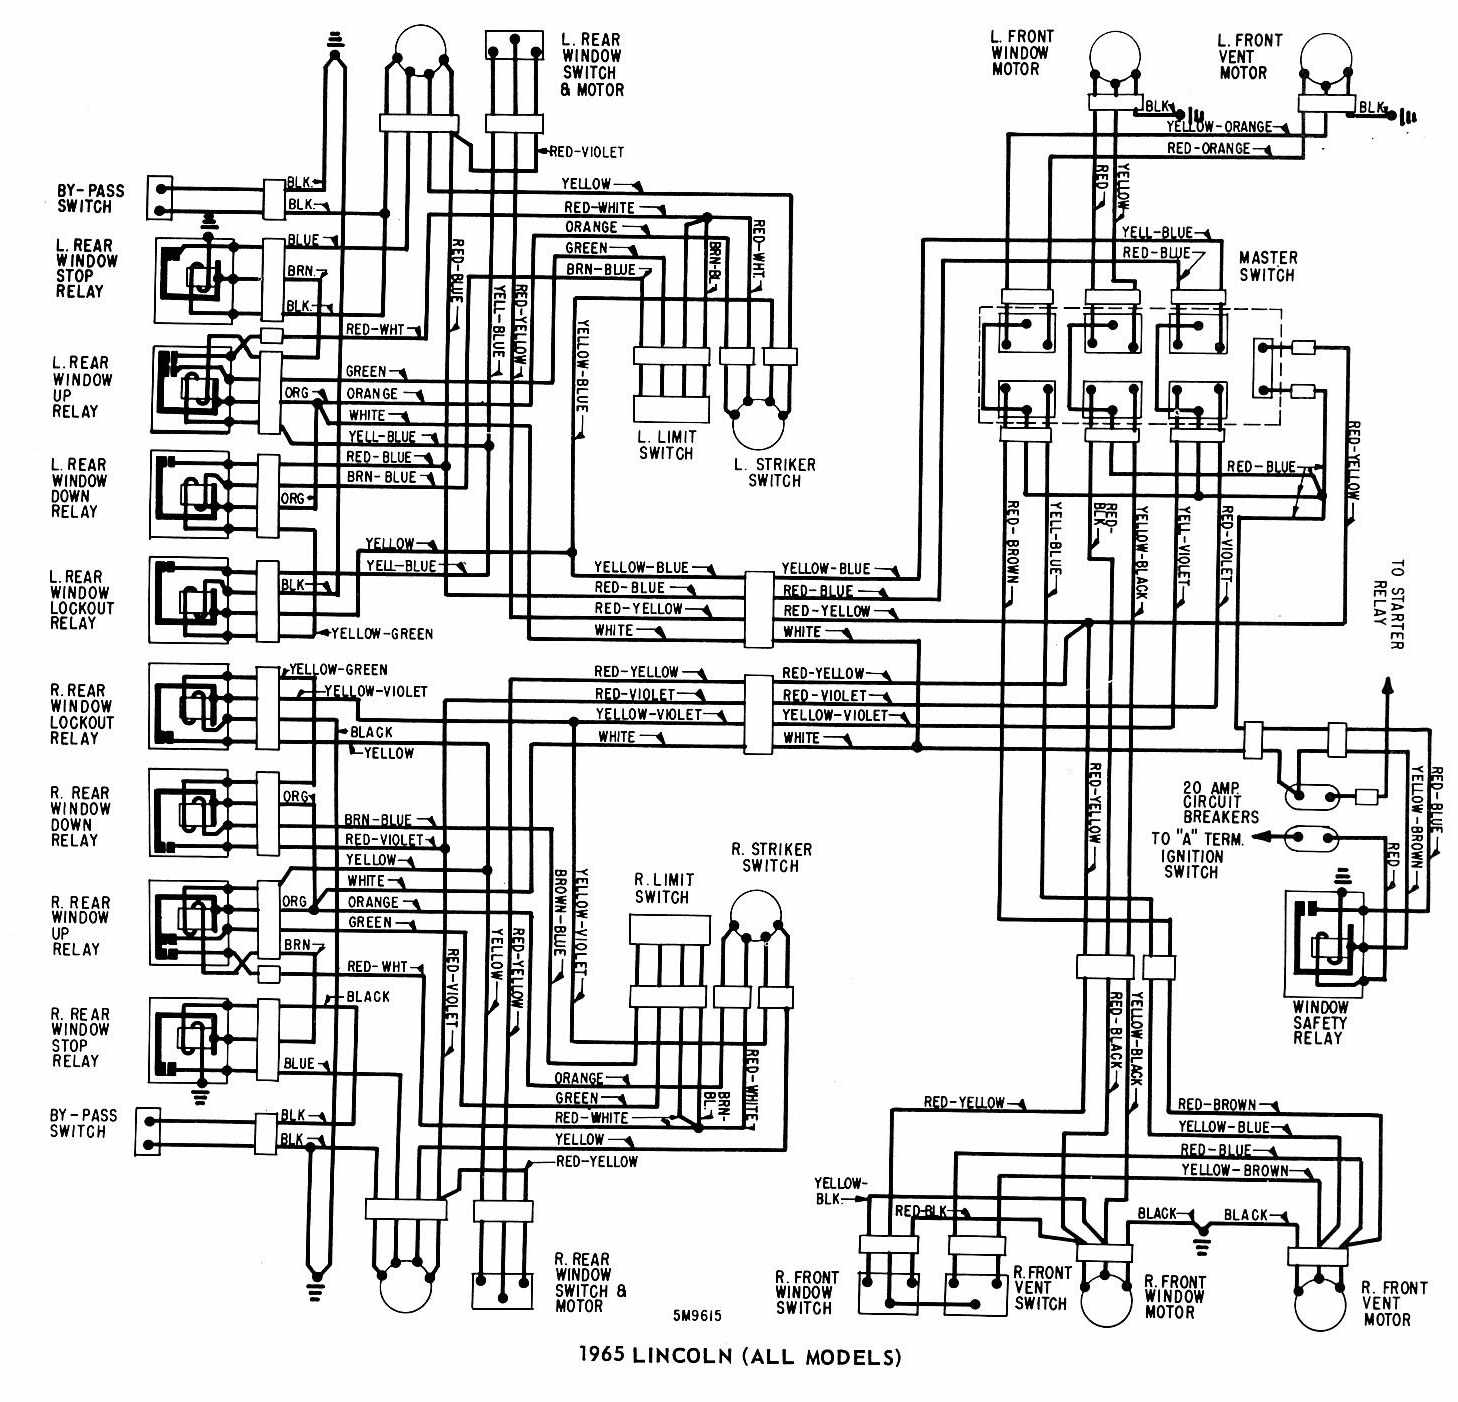 1962 lincoln wiring diagram free wiring diagram for you u2022 lincoln parts diagrams lincoln wiring diagram [ 1458 x 1402 Pixel ]